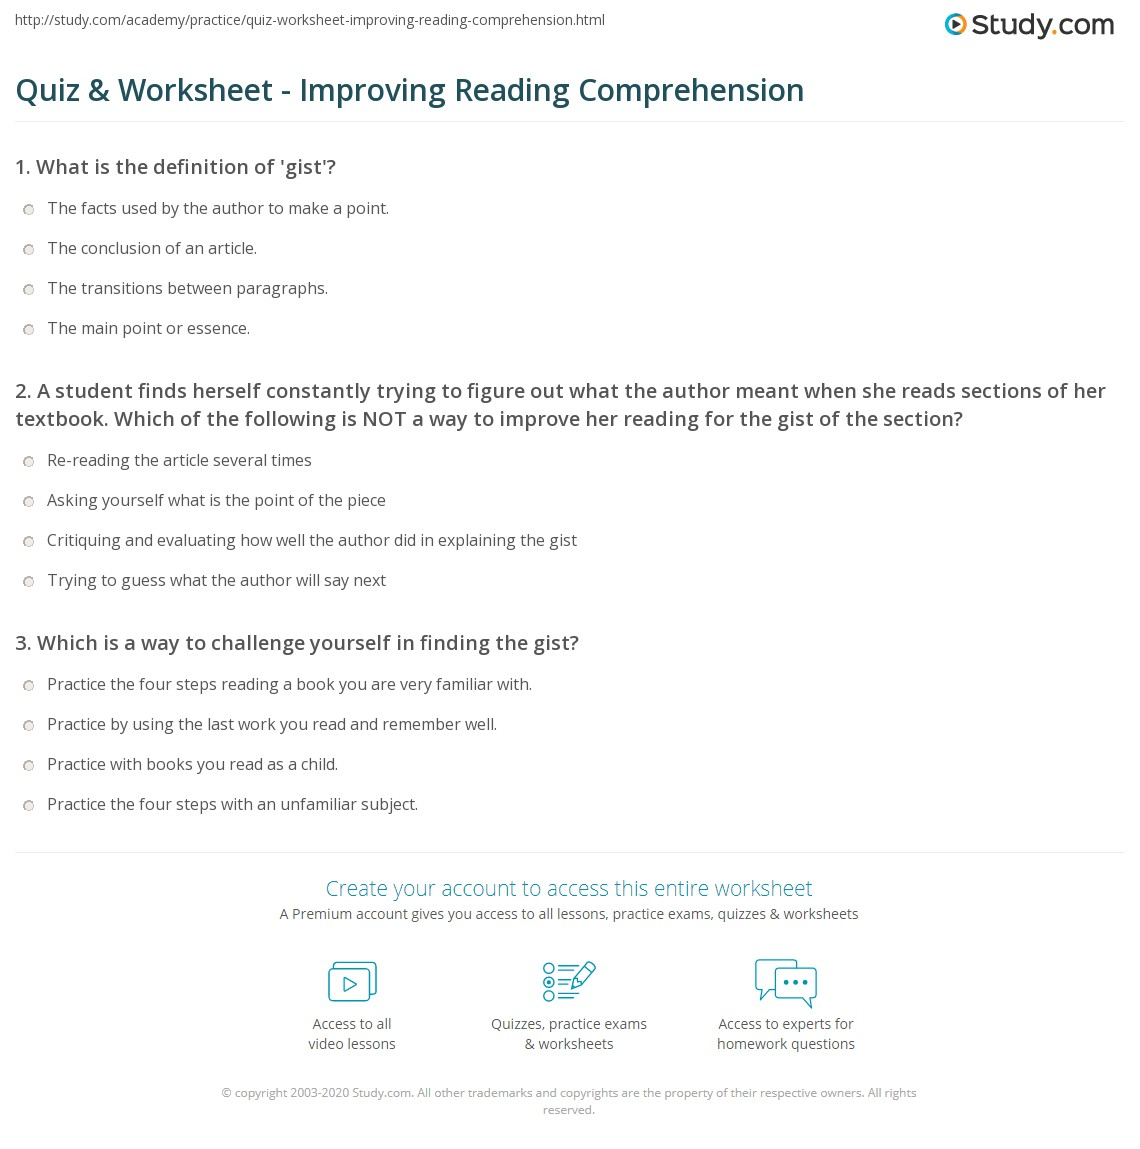 Worksheets Reading Comprehension Worksheets College quiz worksheet improving reading comprehension study com 1 a student finds herself constantly trying to figure out what the author meant when she reads sections of her textbook which f